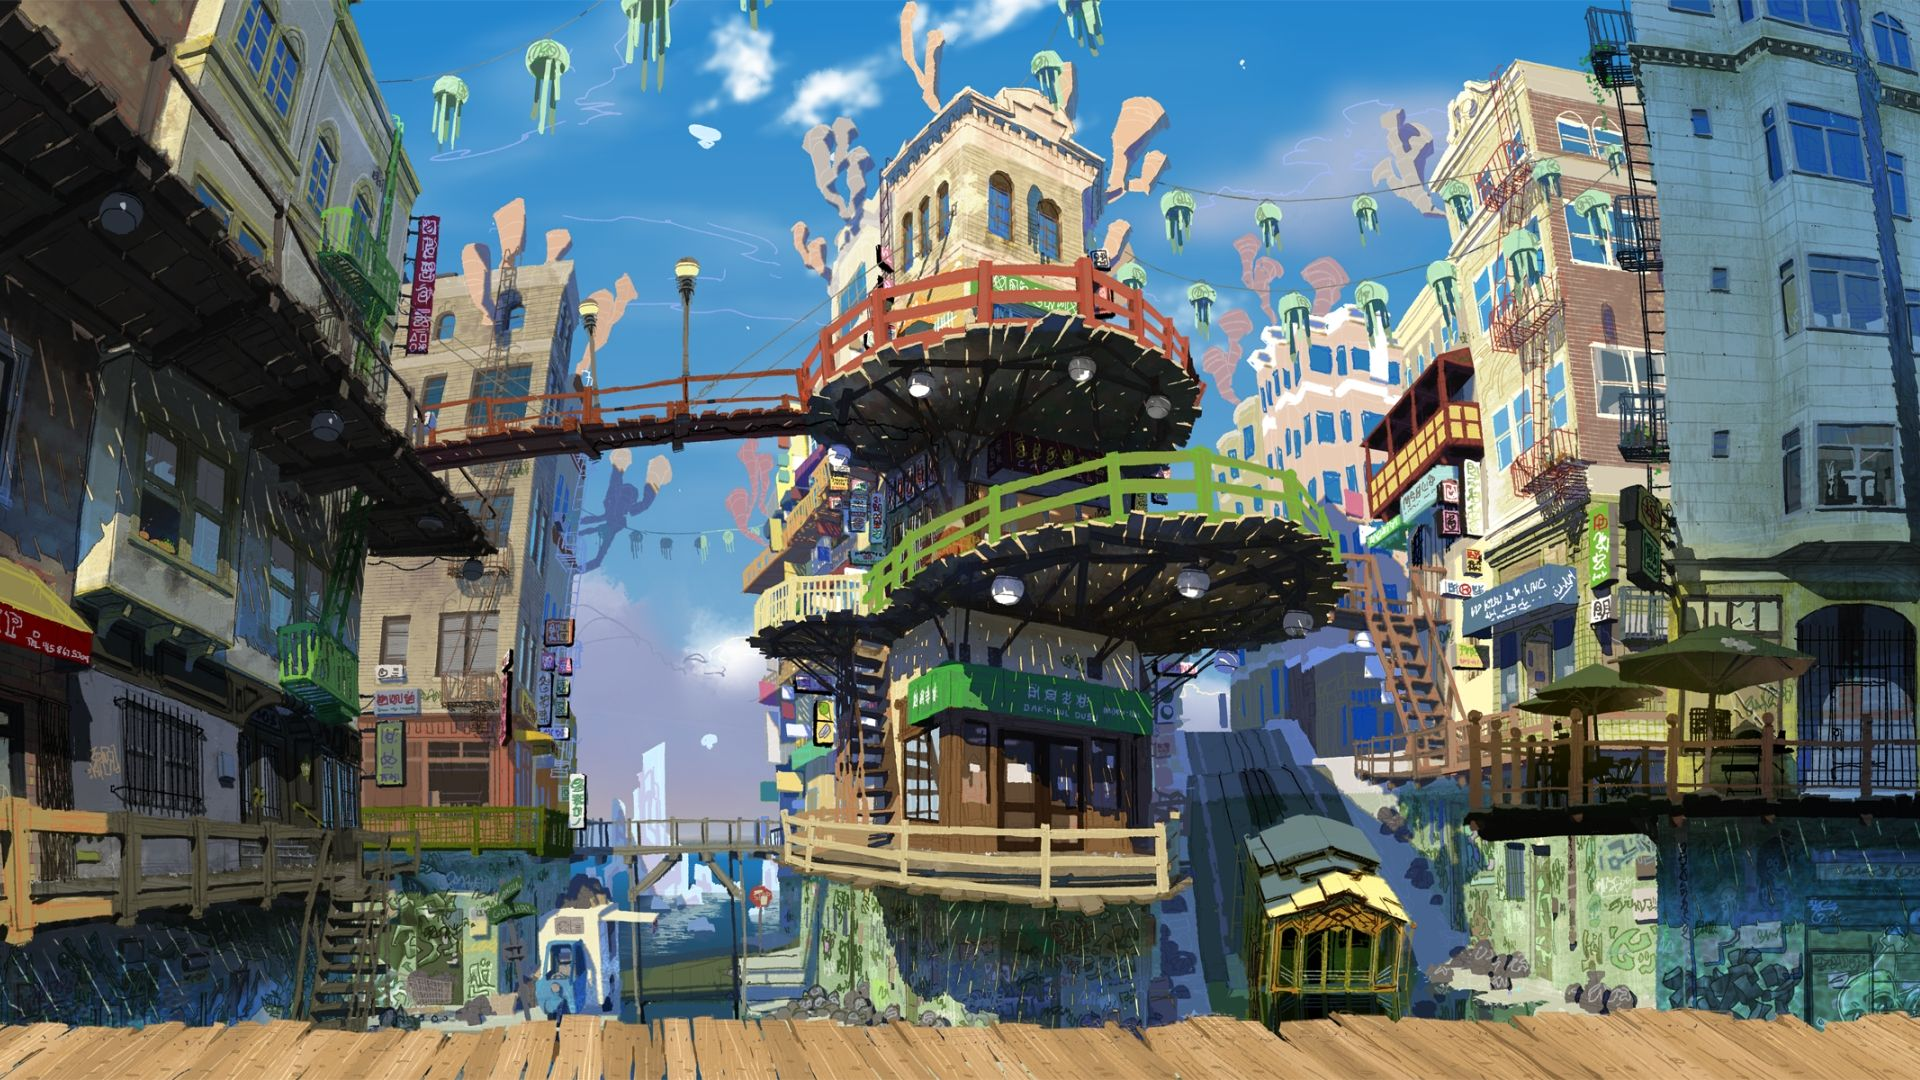 Image Result For Anime City Scenery Wallpaper Anime Scenery Wallpaper Anime Art Fantasy Anime City